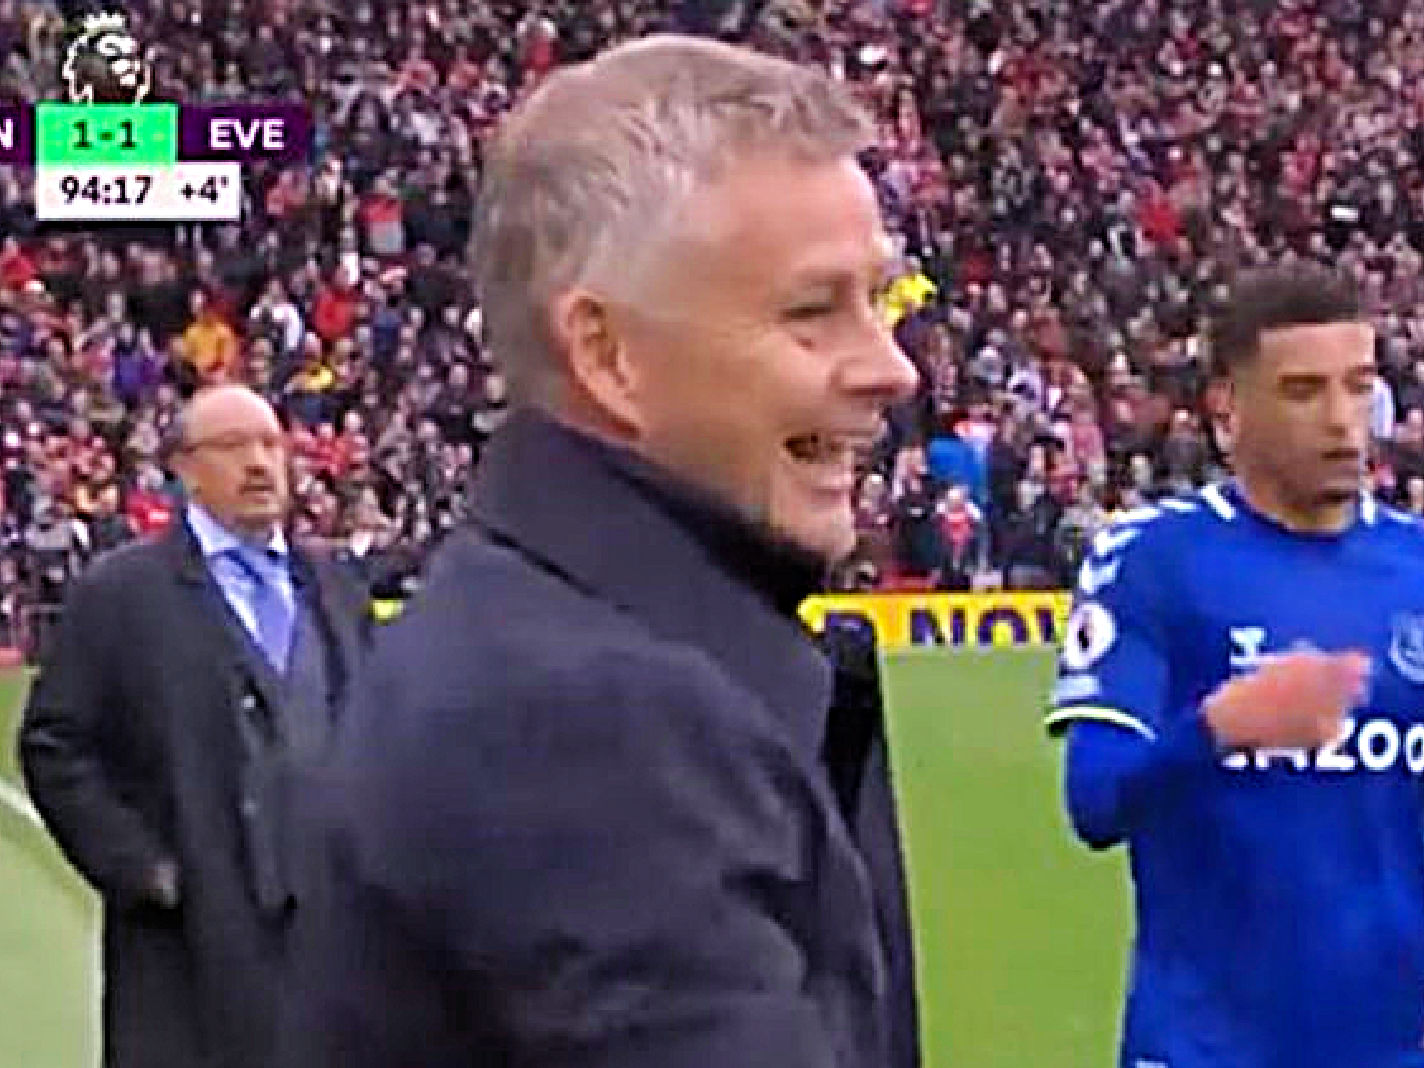 Solskjaer caught smiling in the 94th minute of Everton draw